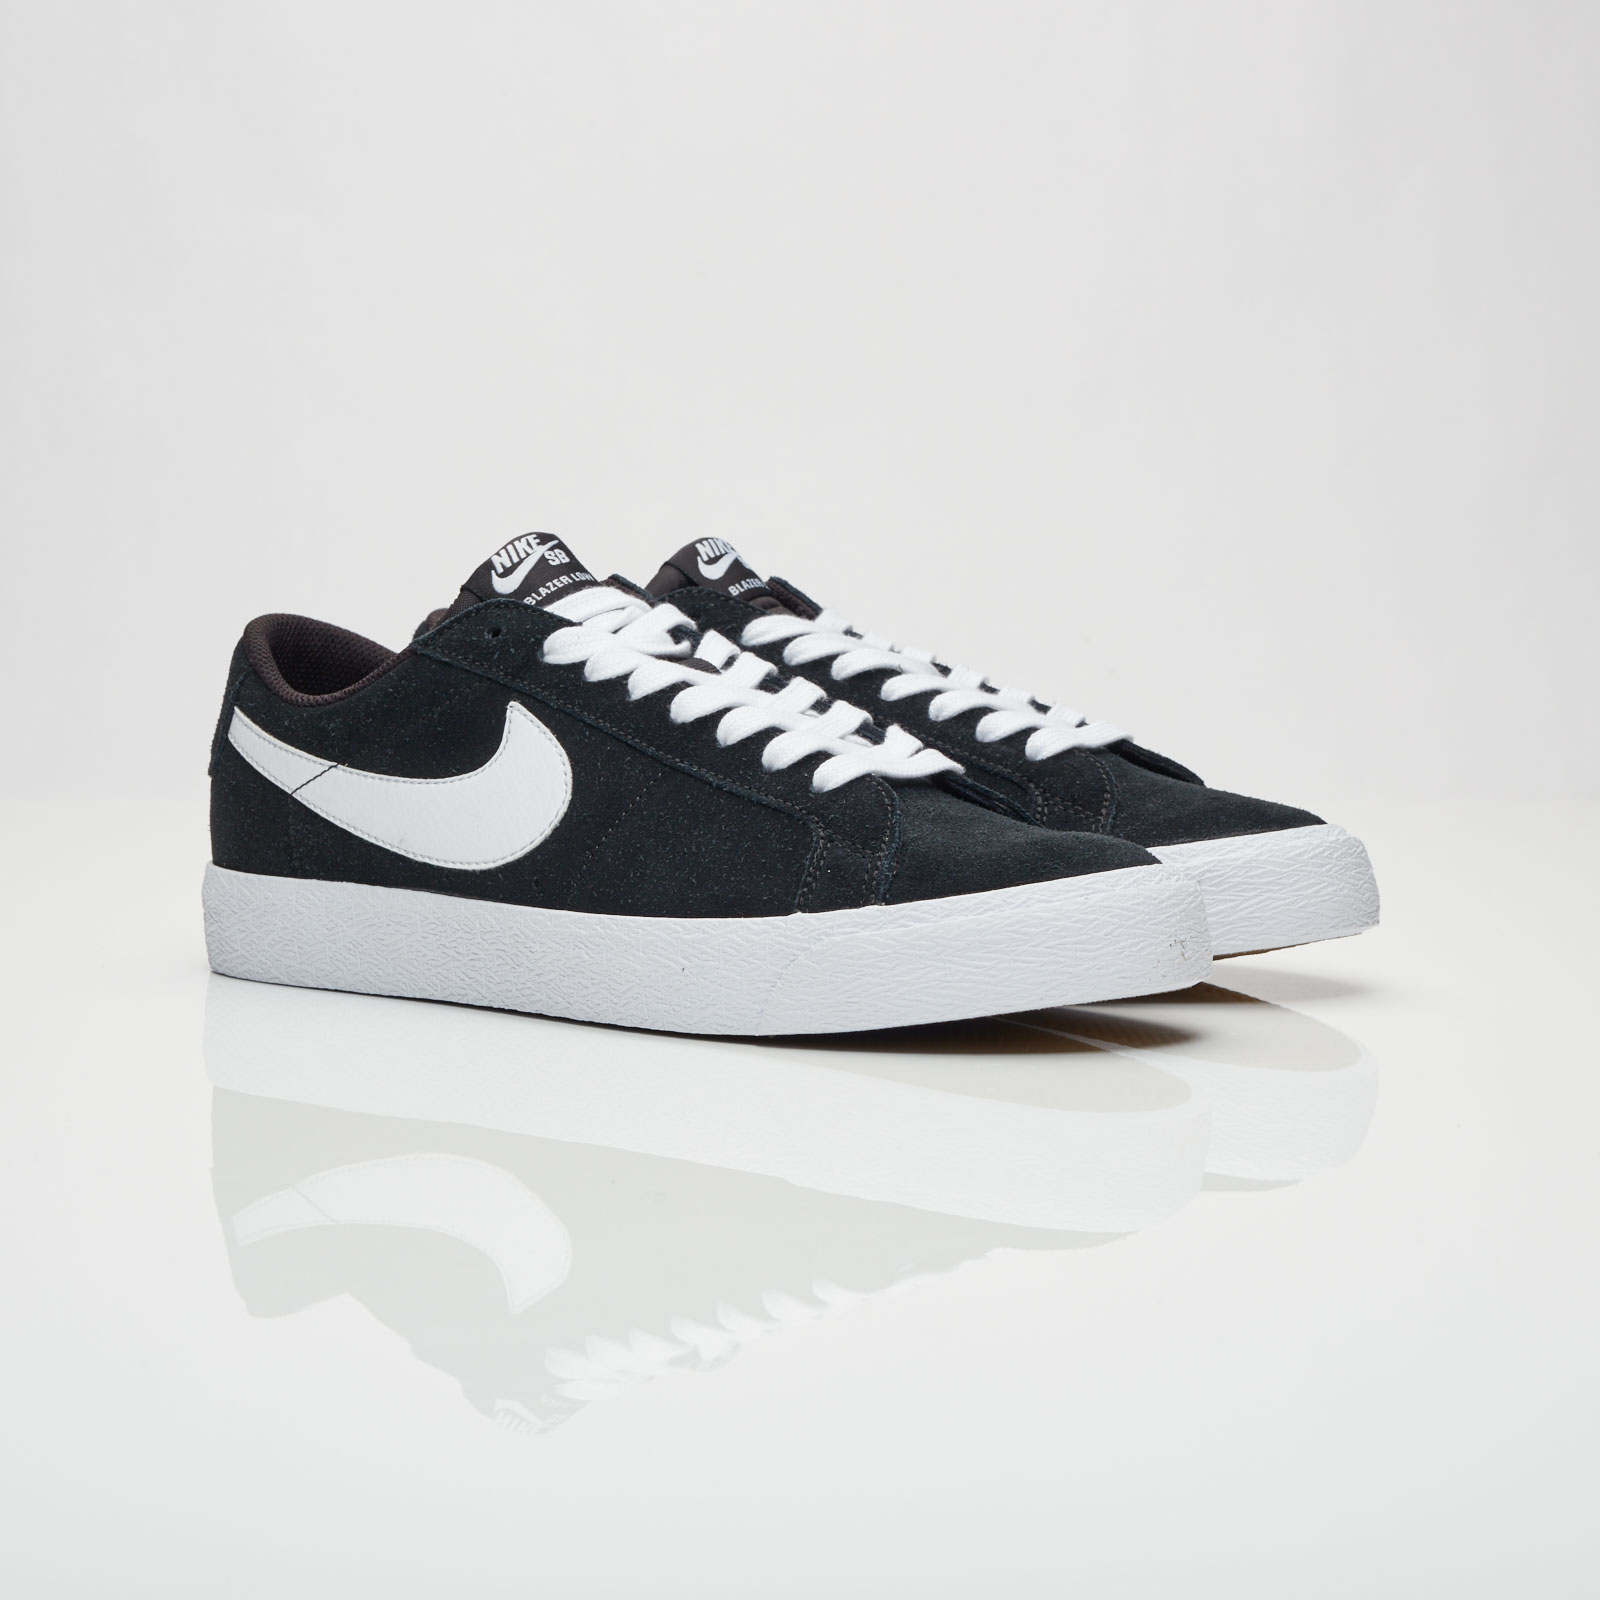 a70a3db106e Nike Blazer Zoom Low - 864347-019 - Sneakersnstuff